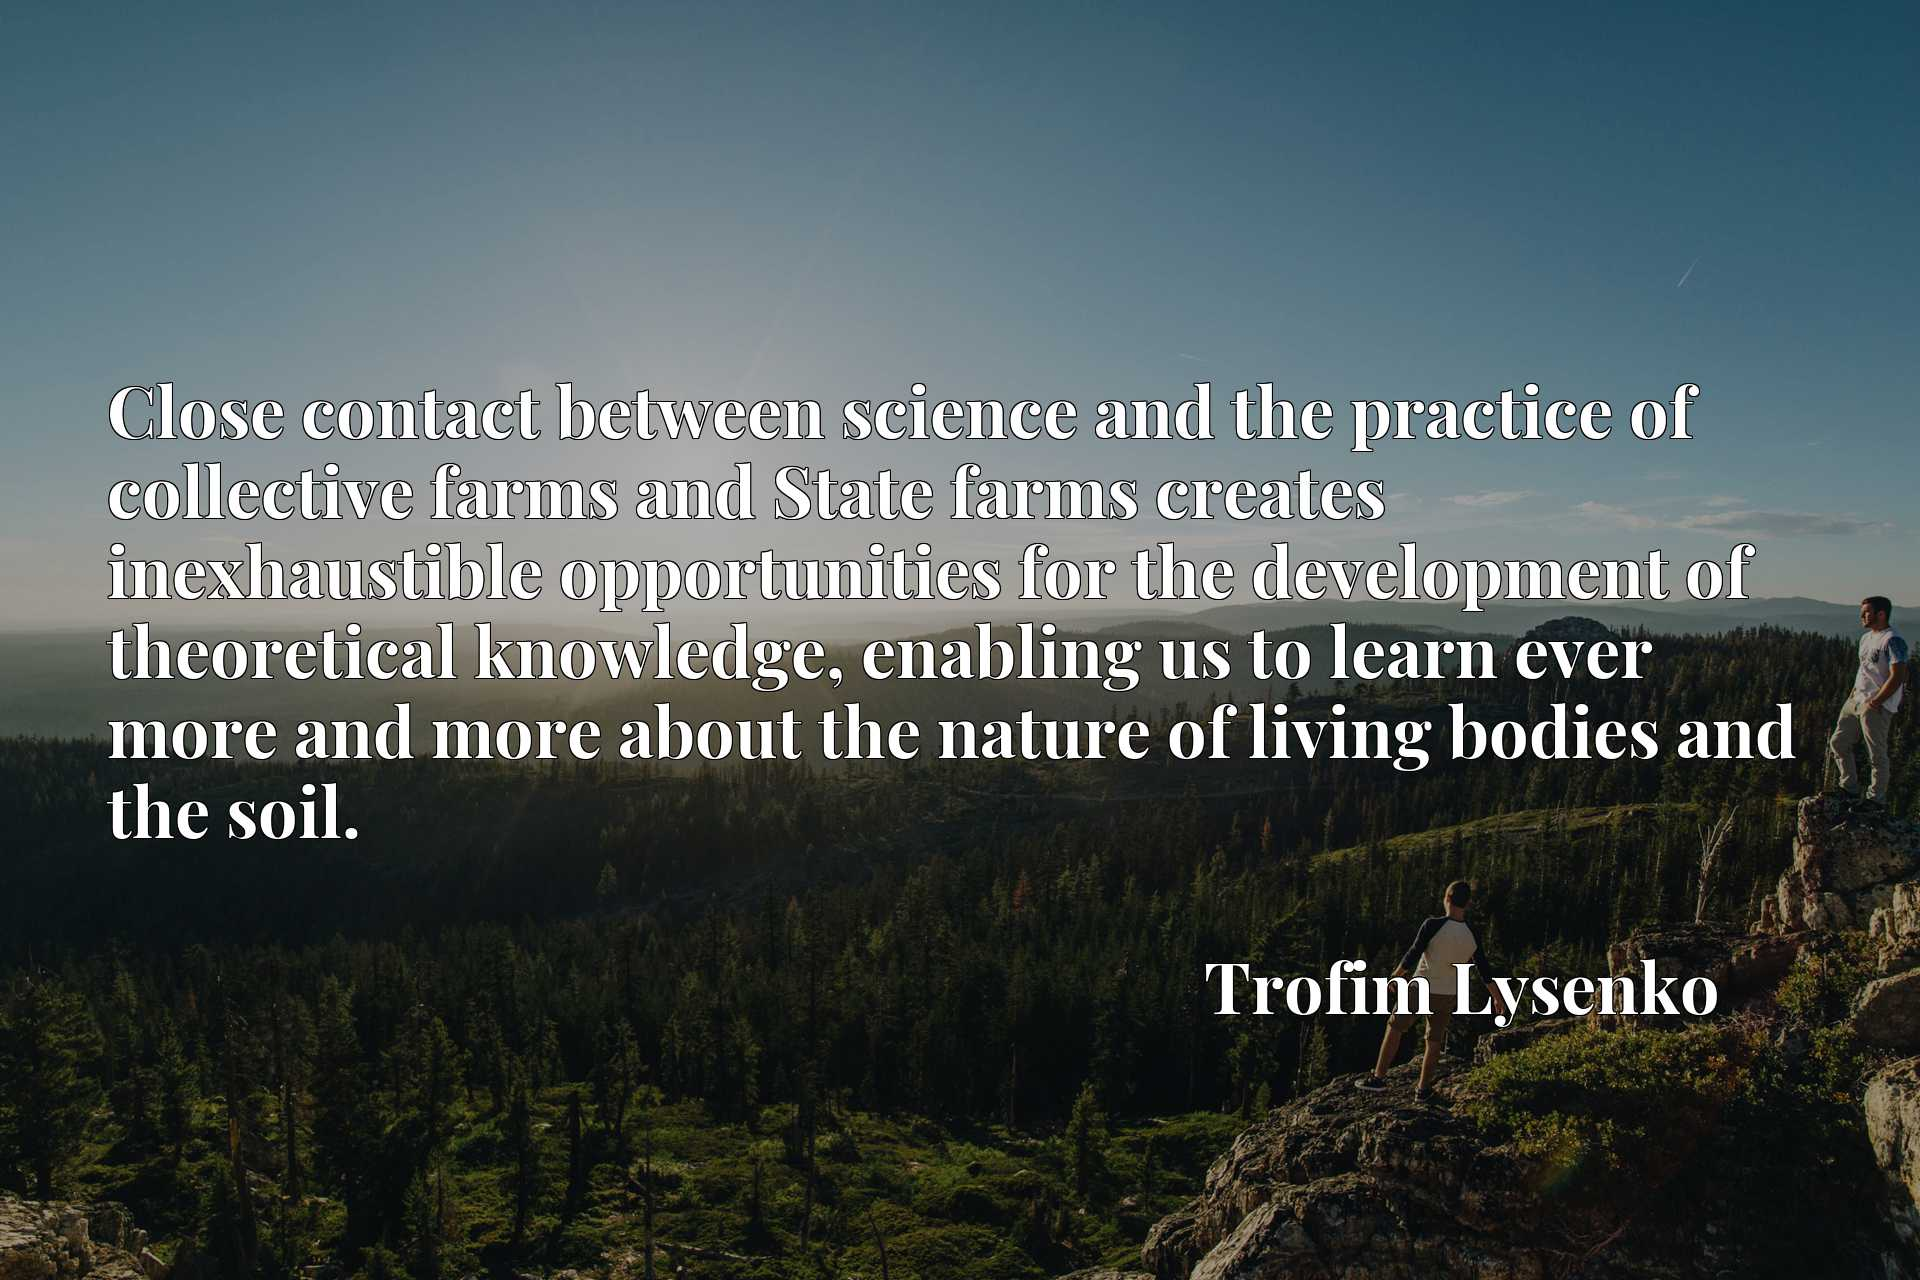 Close contact between science and the practice of collective farms and State farms creates inexhaustible opportunities for the development of theoretical knowledge, enabling us to learn ever more and more about the nature of living bodies and the soil.